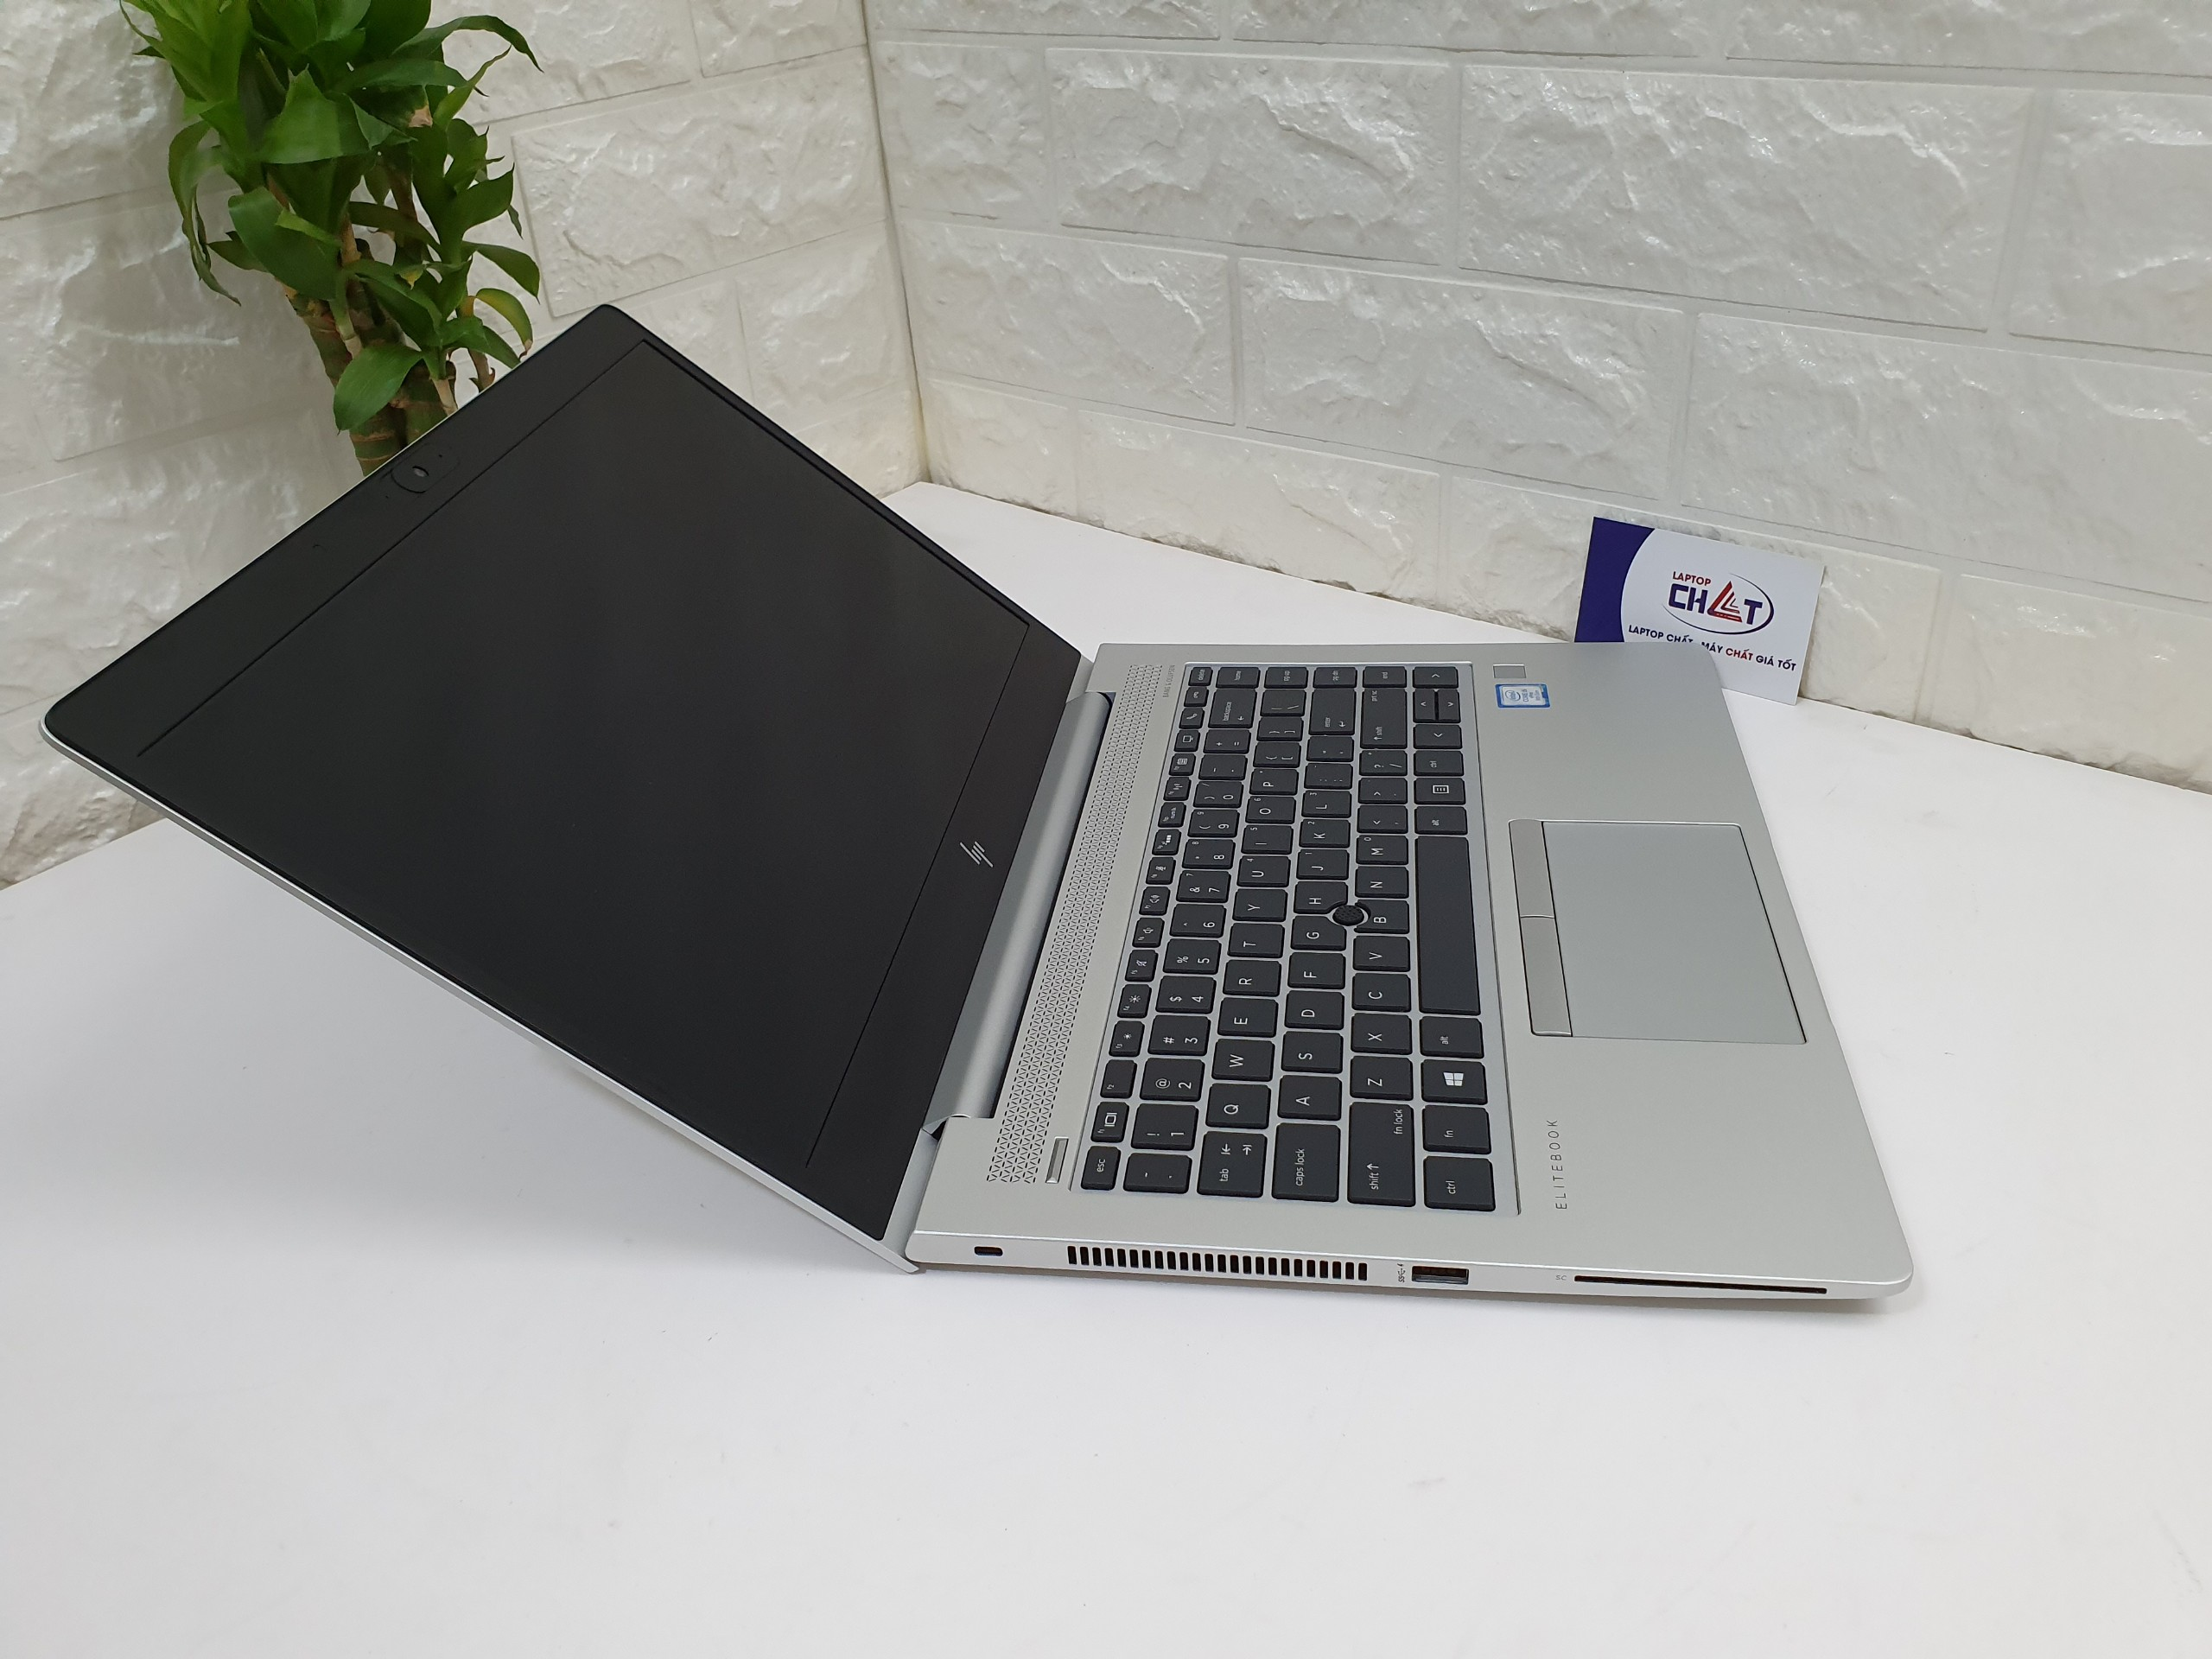 HP Elitebook 840 G5 core i7-3